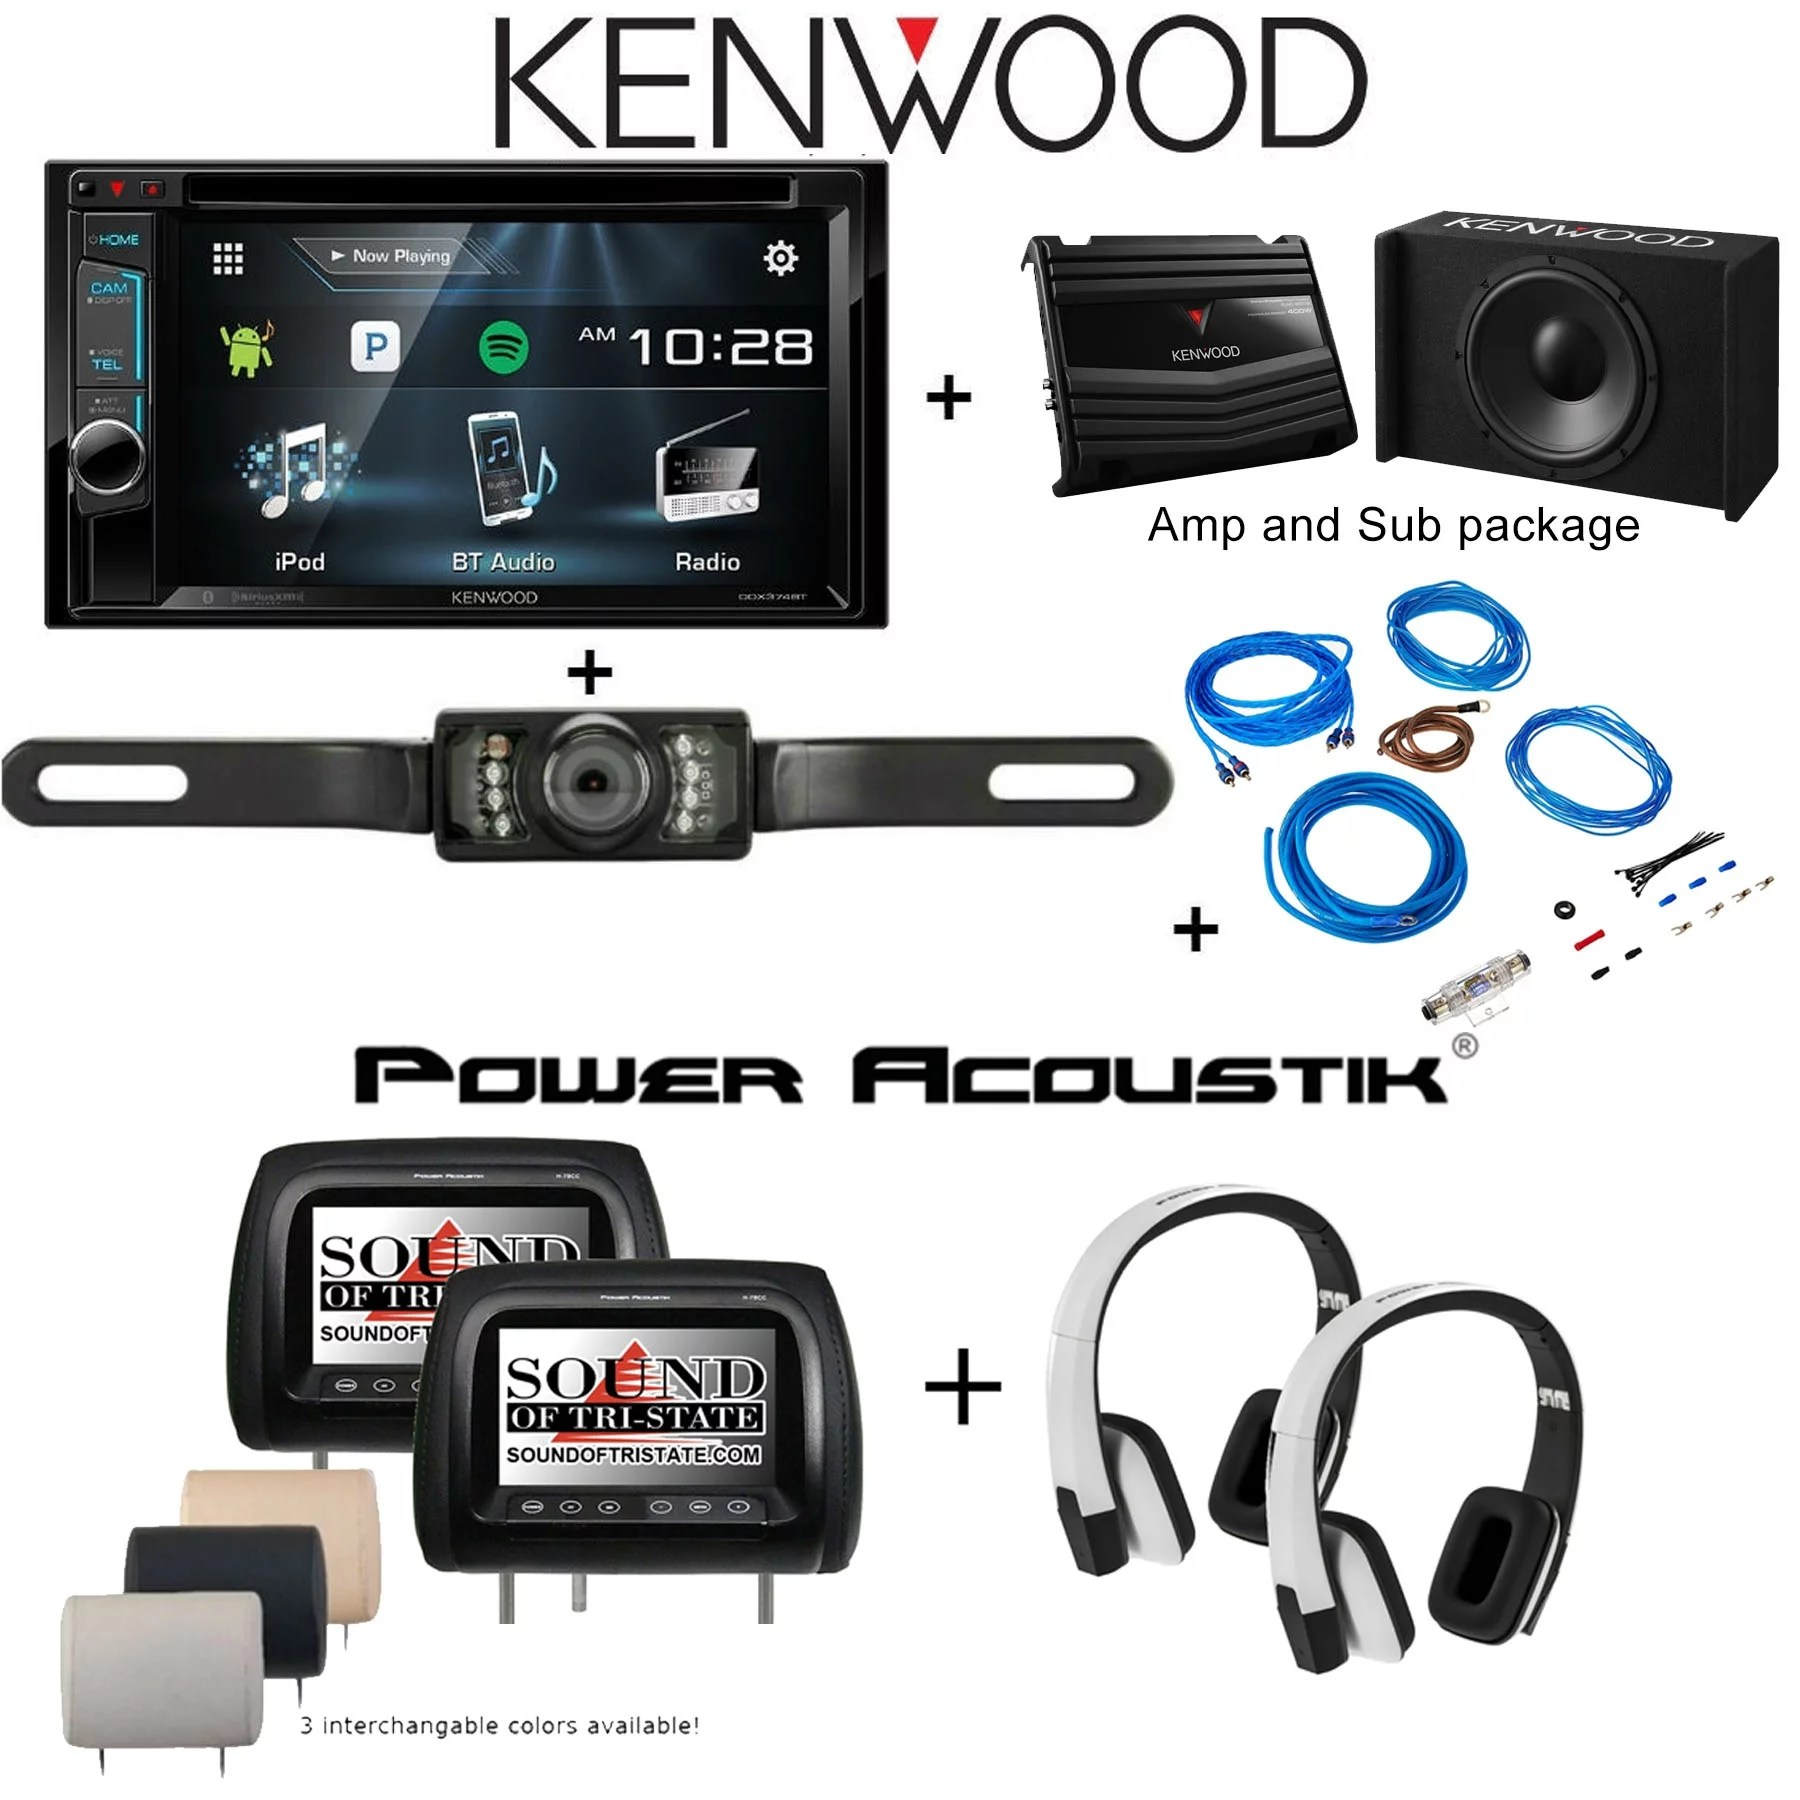 hight resolution of  camera power acoustik h 78cc two 7 headrest monitors hir2w two wireless headphones p w100b subwoofer and amplifier stinger ssk8 8ga wiring kit